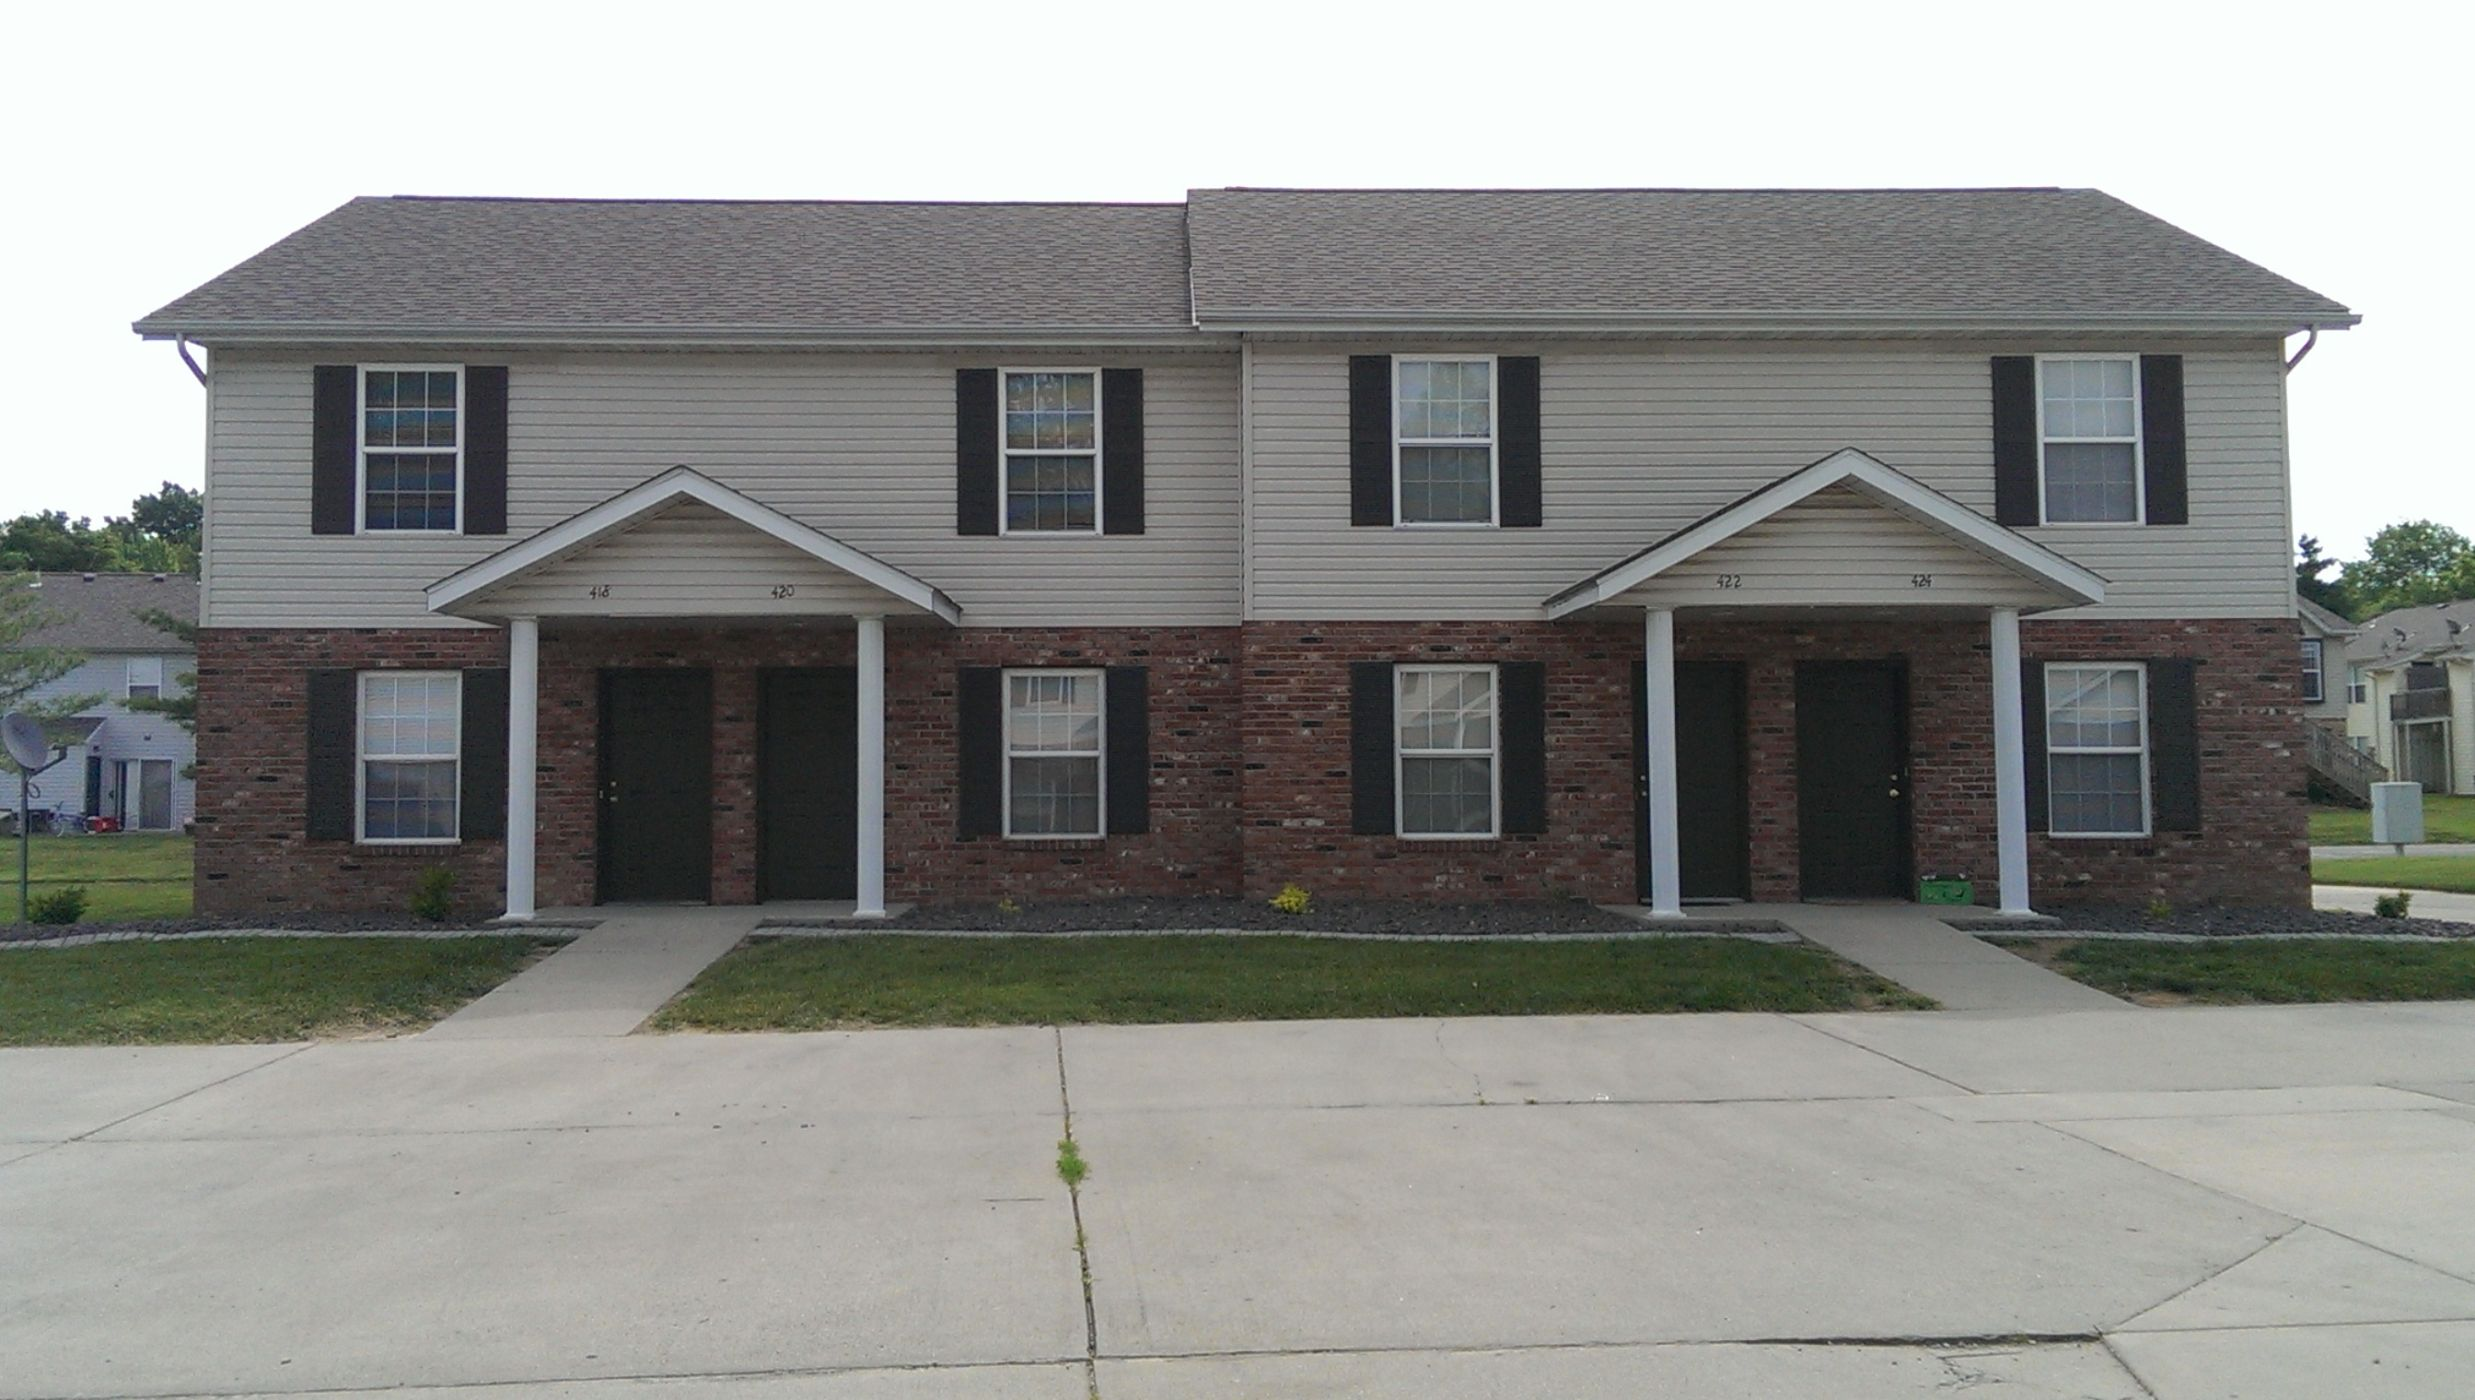 Collinsville Home, IL Real Estate Listing